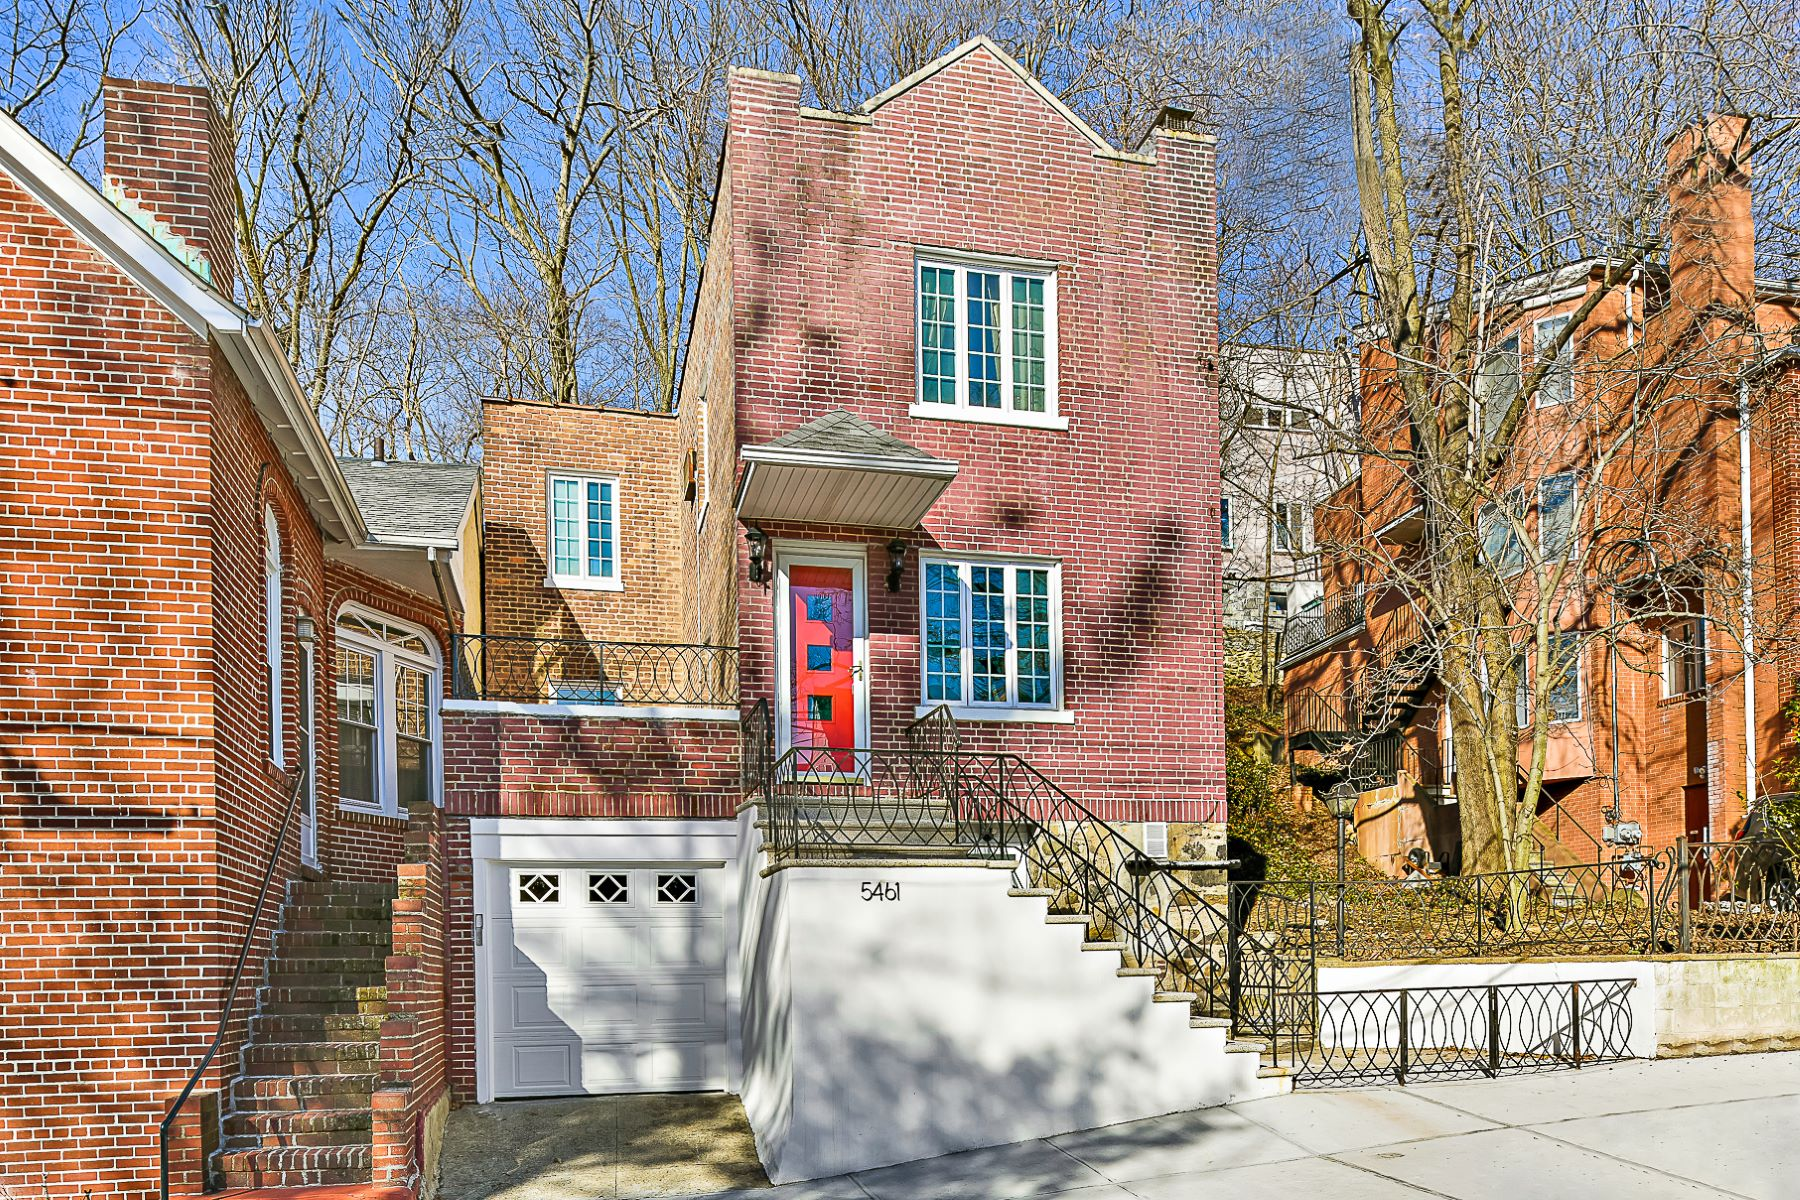 Single Family Home for Sale at Move-in Ready, Renovated Charming Red Brick Home 5461 Sylvan Avenue Riverdale, New York 10461 United States